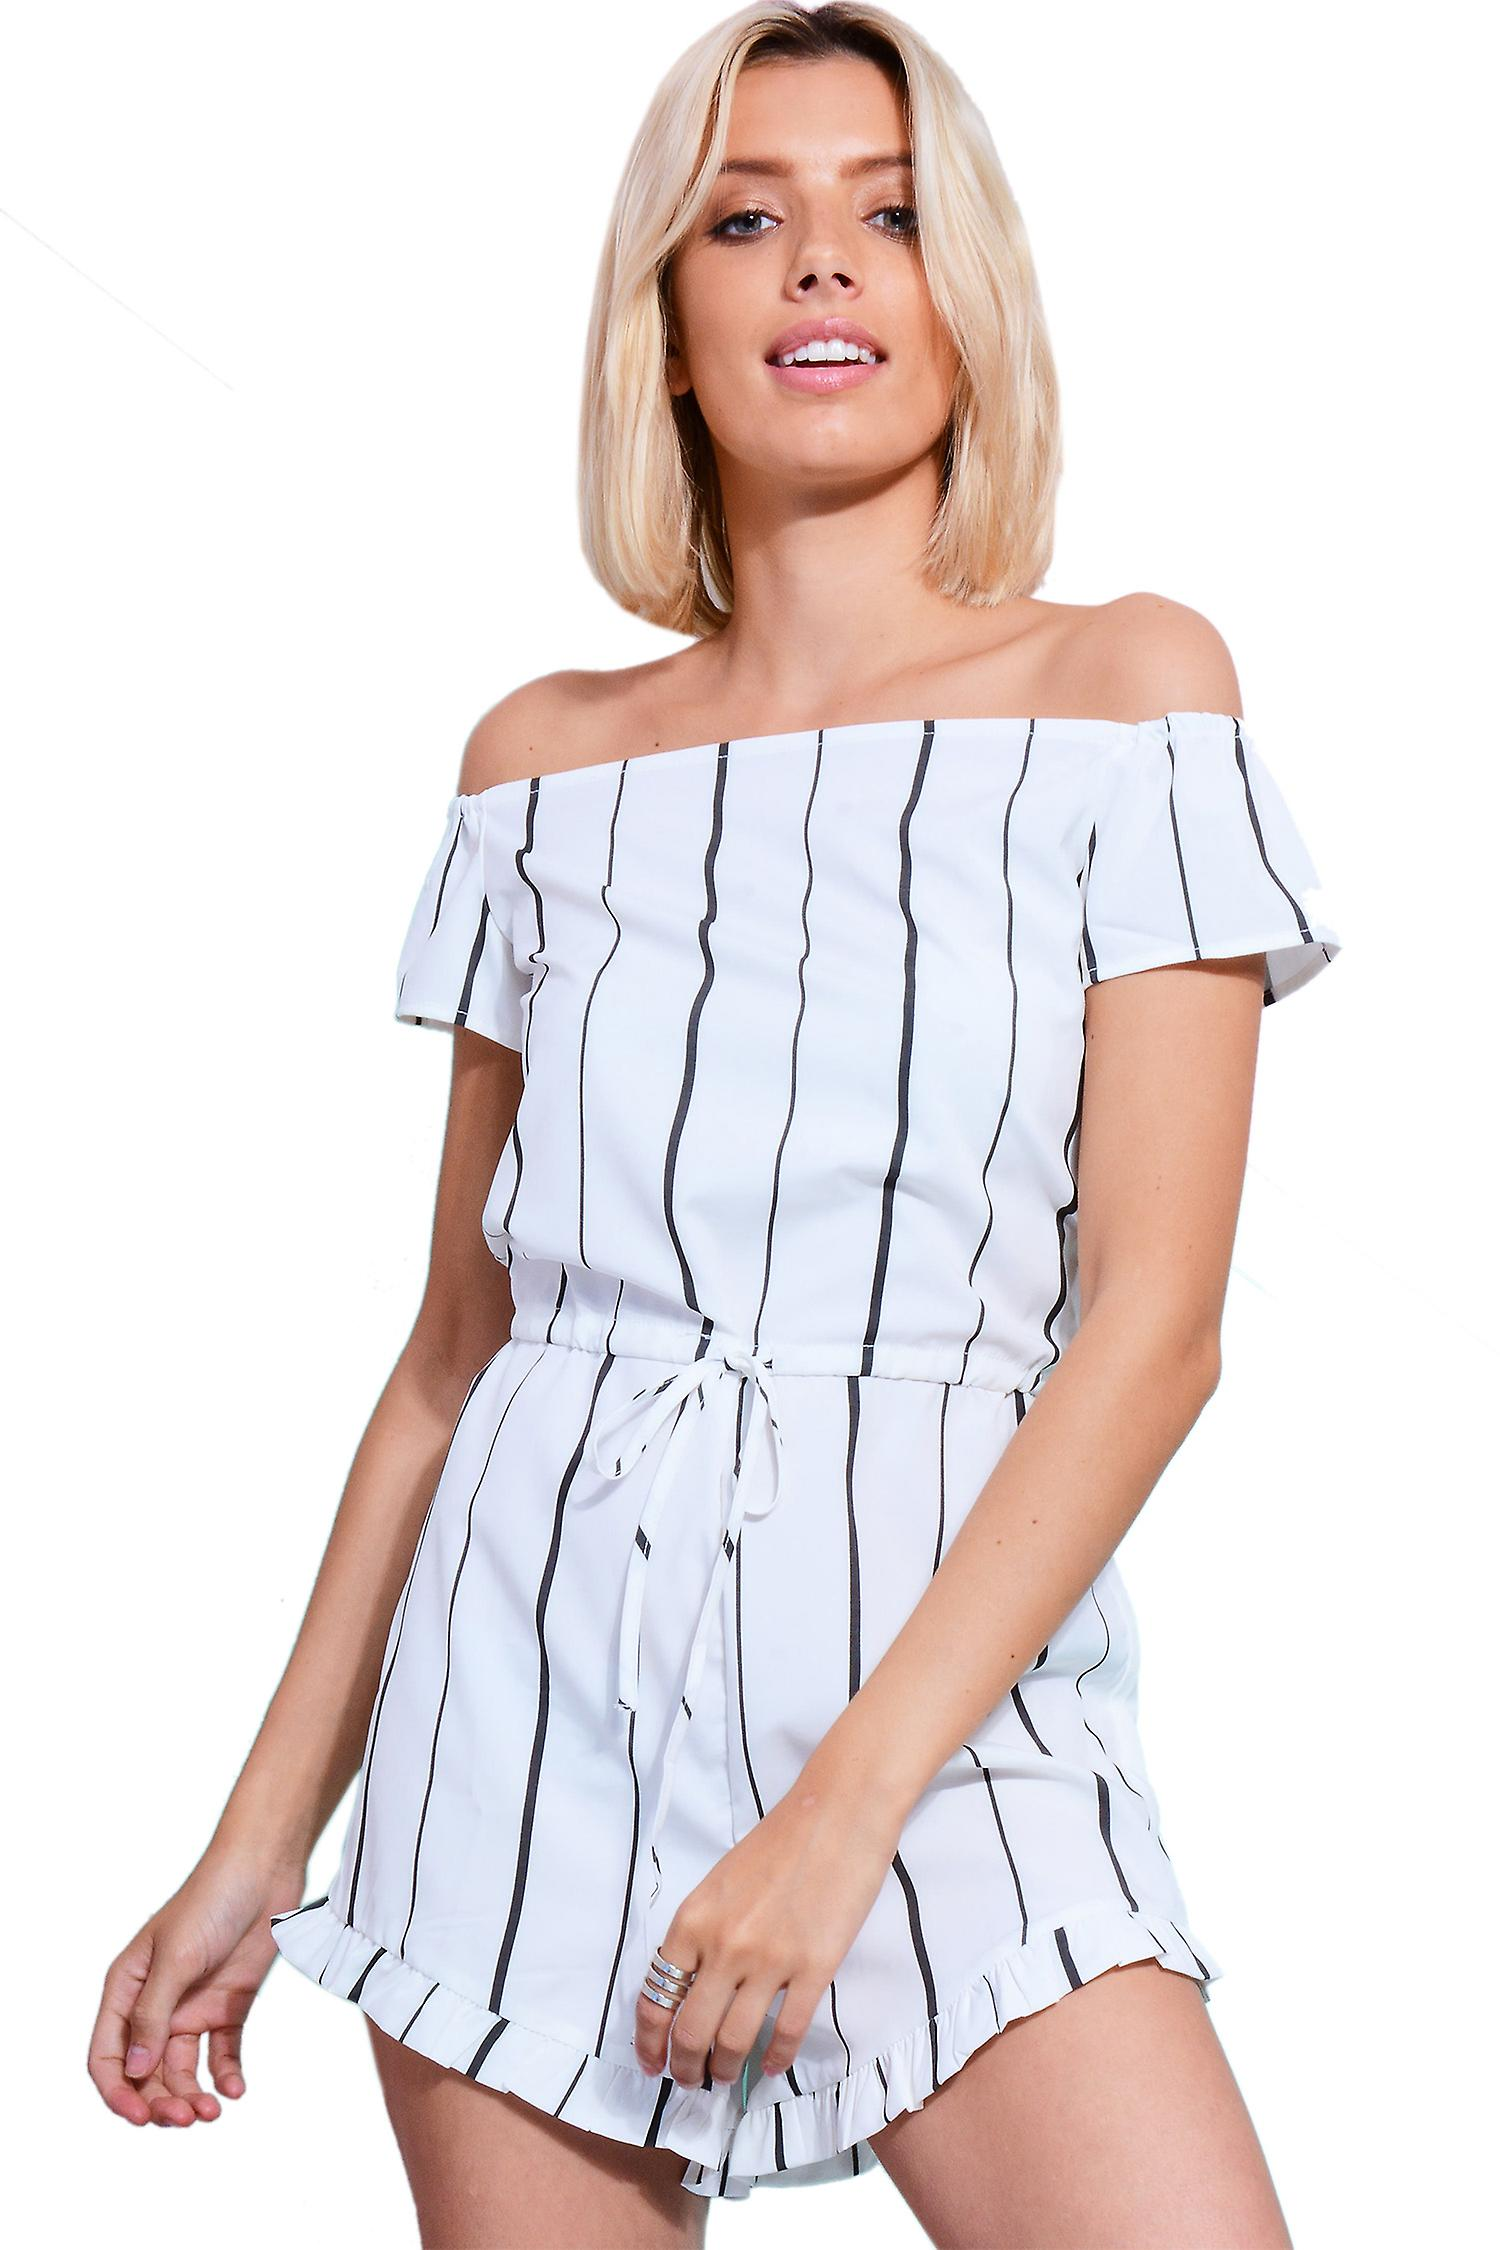 Lovemystyle White Playsuit With Frills And Stripes